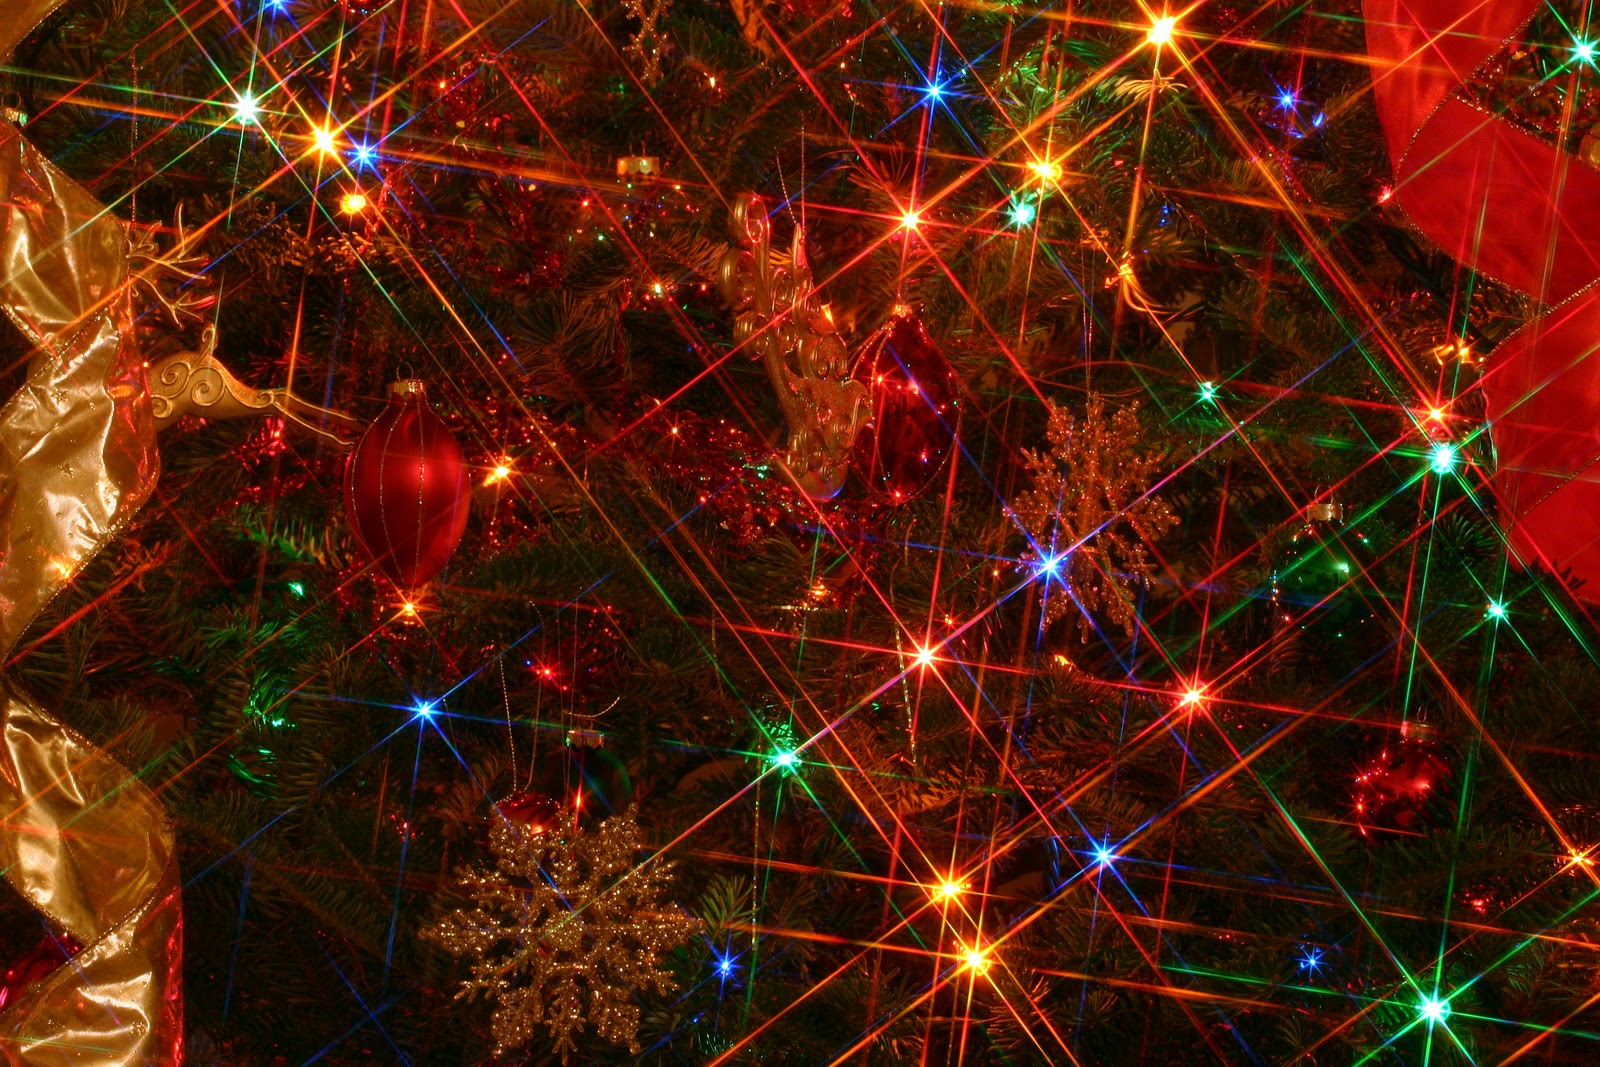 Free Download Christmas Lights Backgrounds Hd Wallpaper